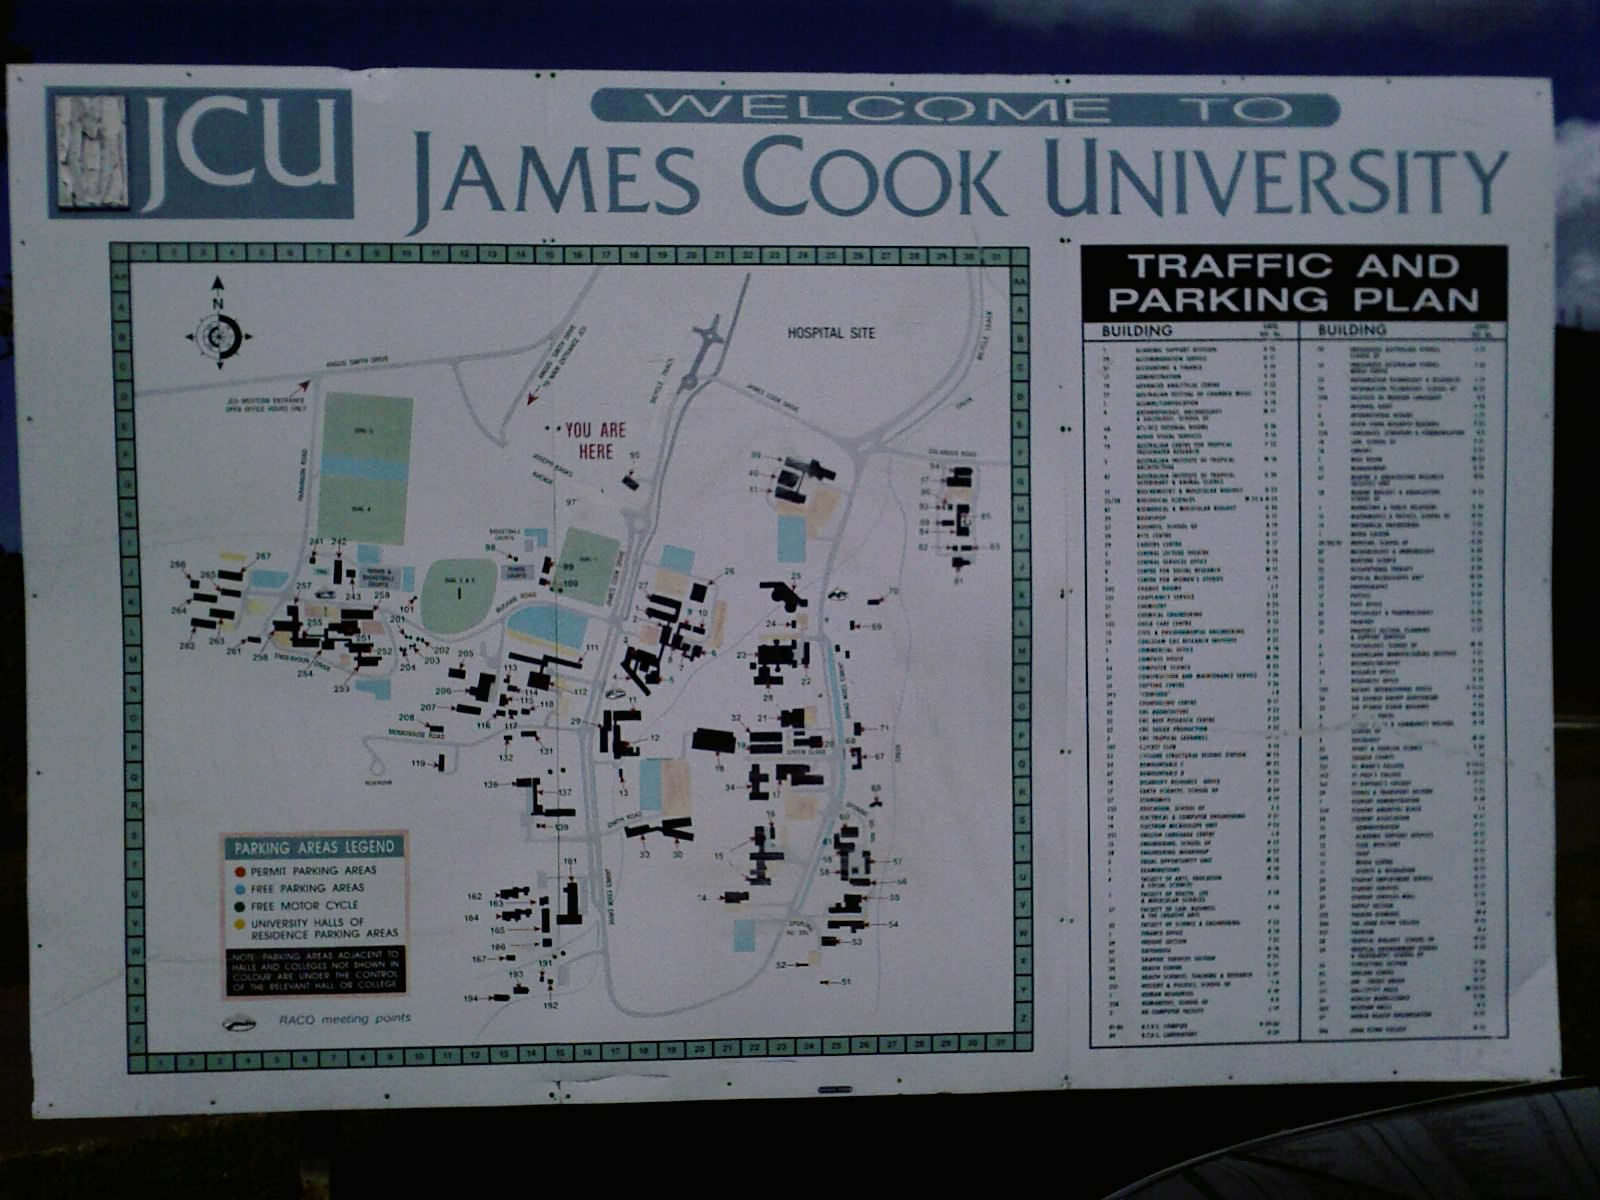 Jcu Townsville Map File:James Cook Uni map.   Wikipedia